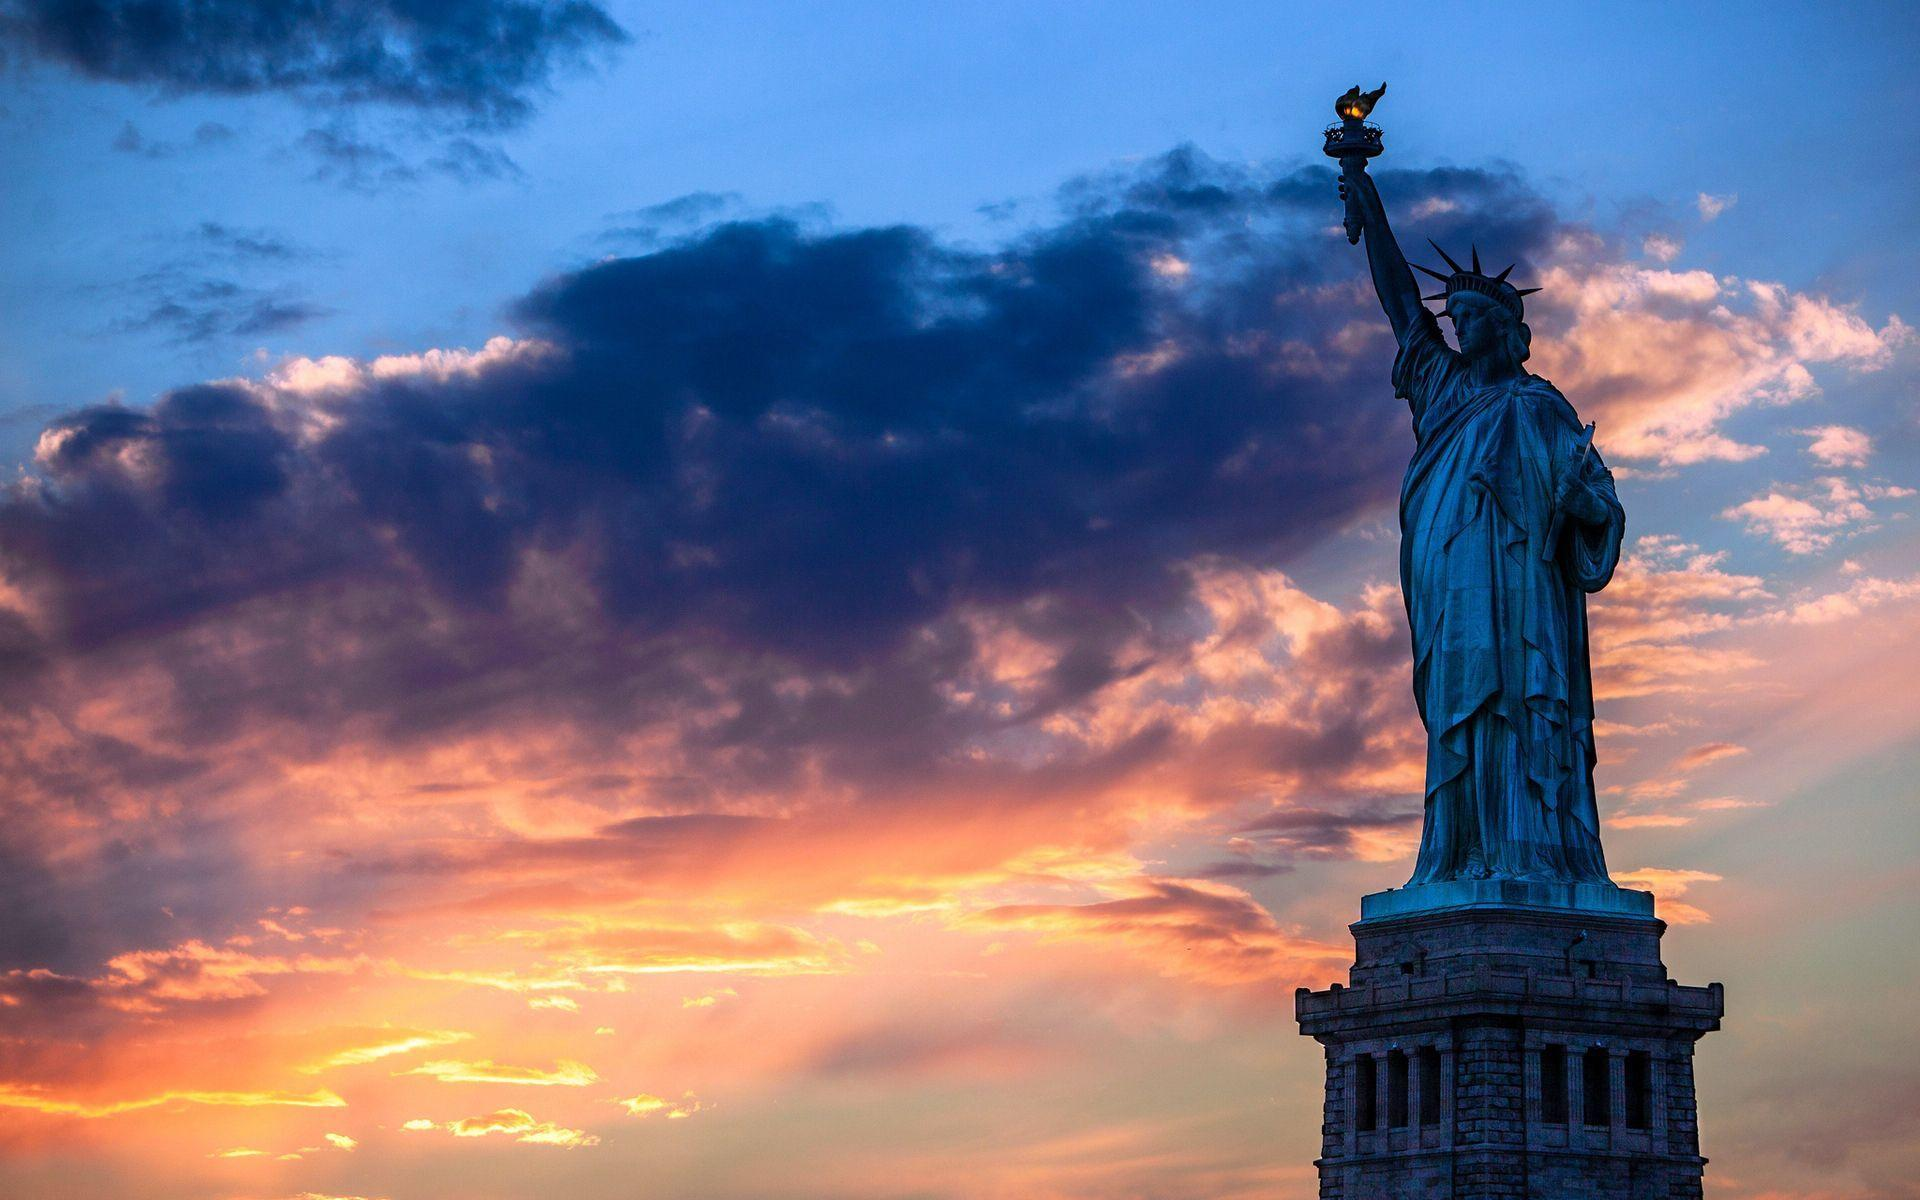 Statue of Liberty NY HD Wallpaper | Download Free HD Wallpapers